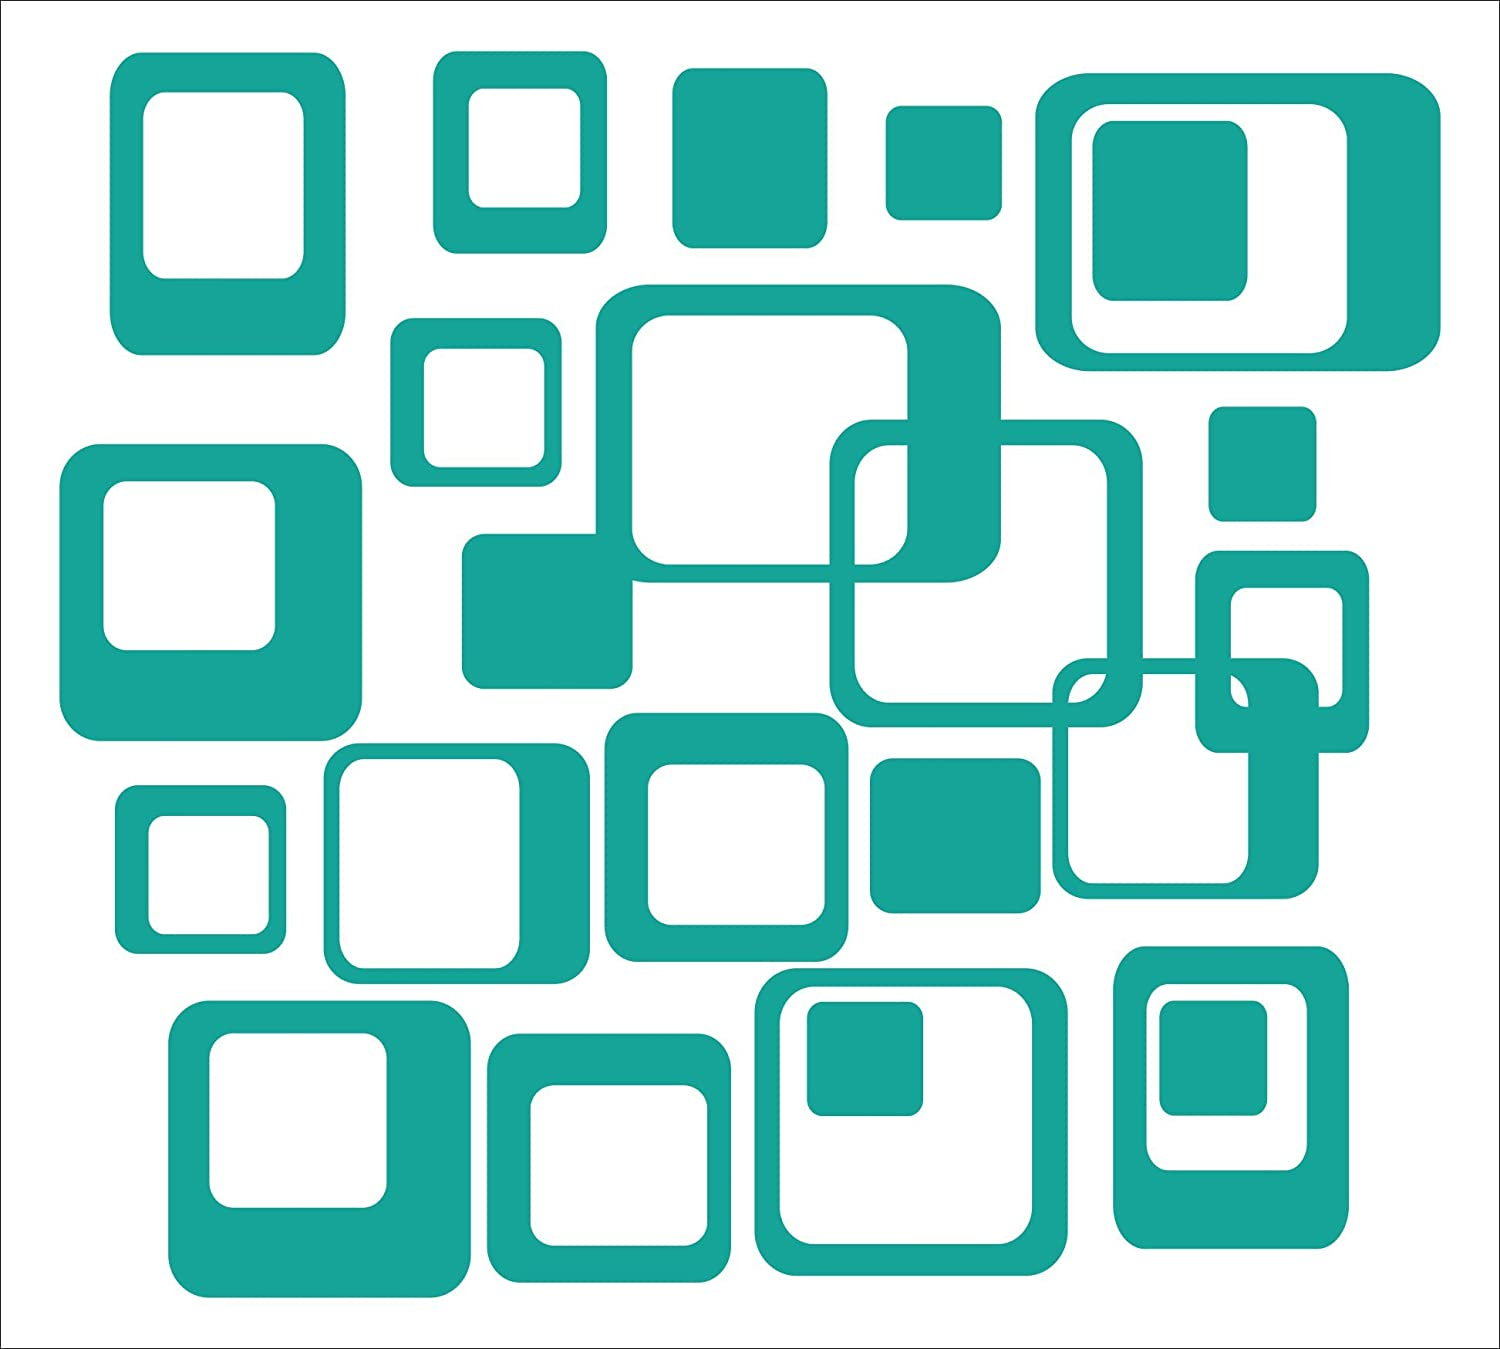 Teal Wall Decor Plus More WDPM650 6-Inch and Smaller Funky Wall R//Squares Vinyl Sticker Decals 20-Piece